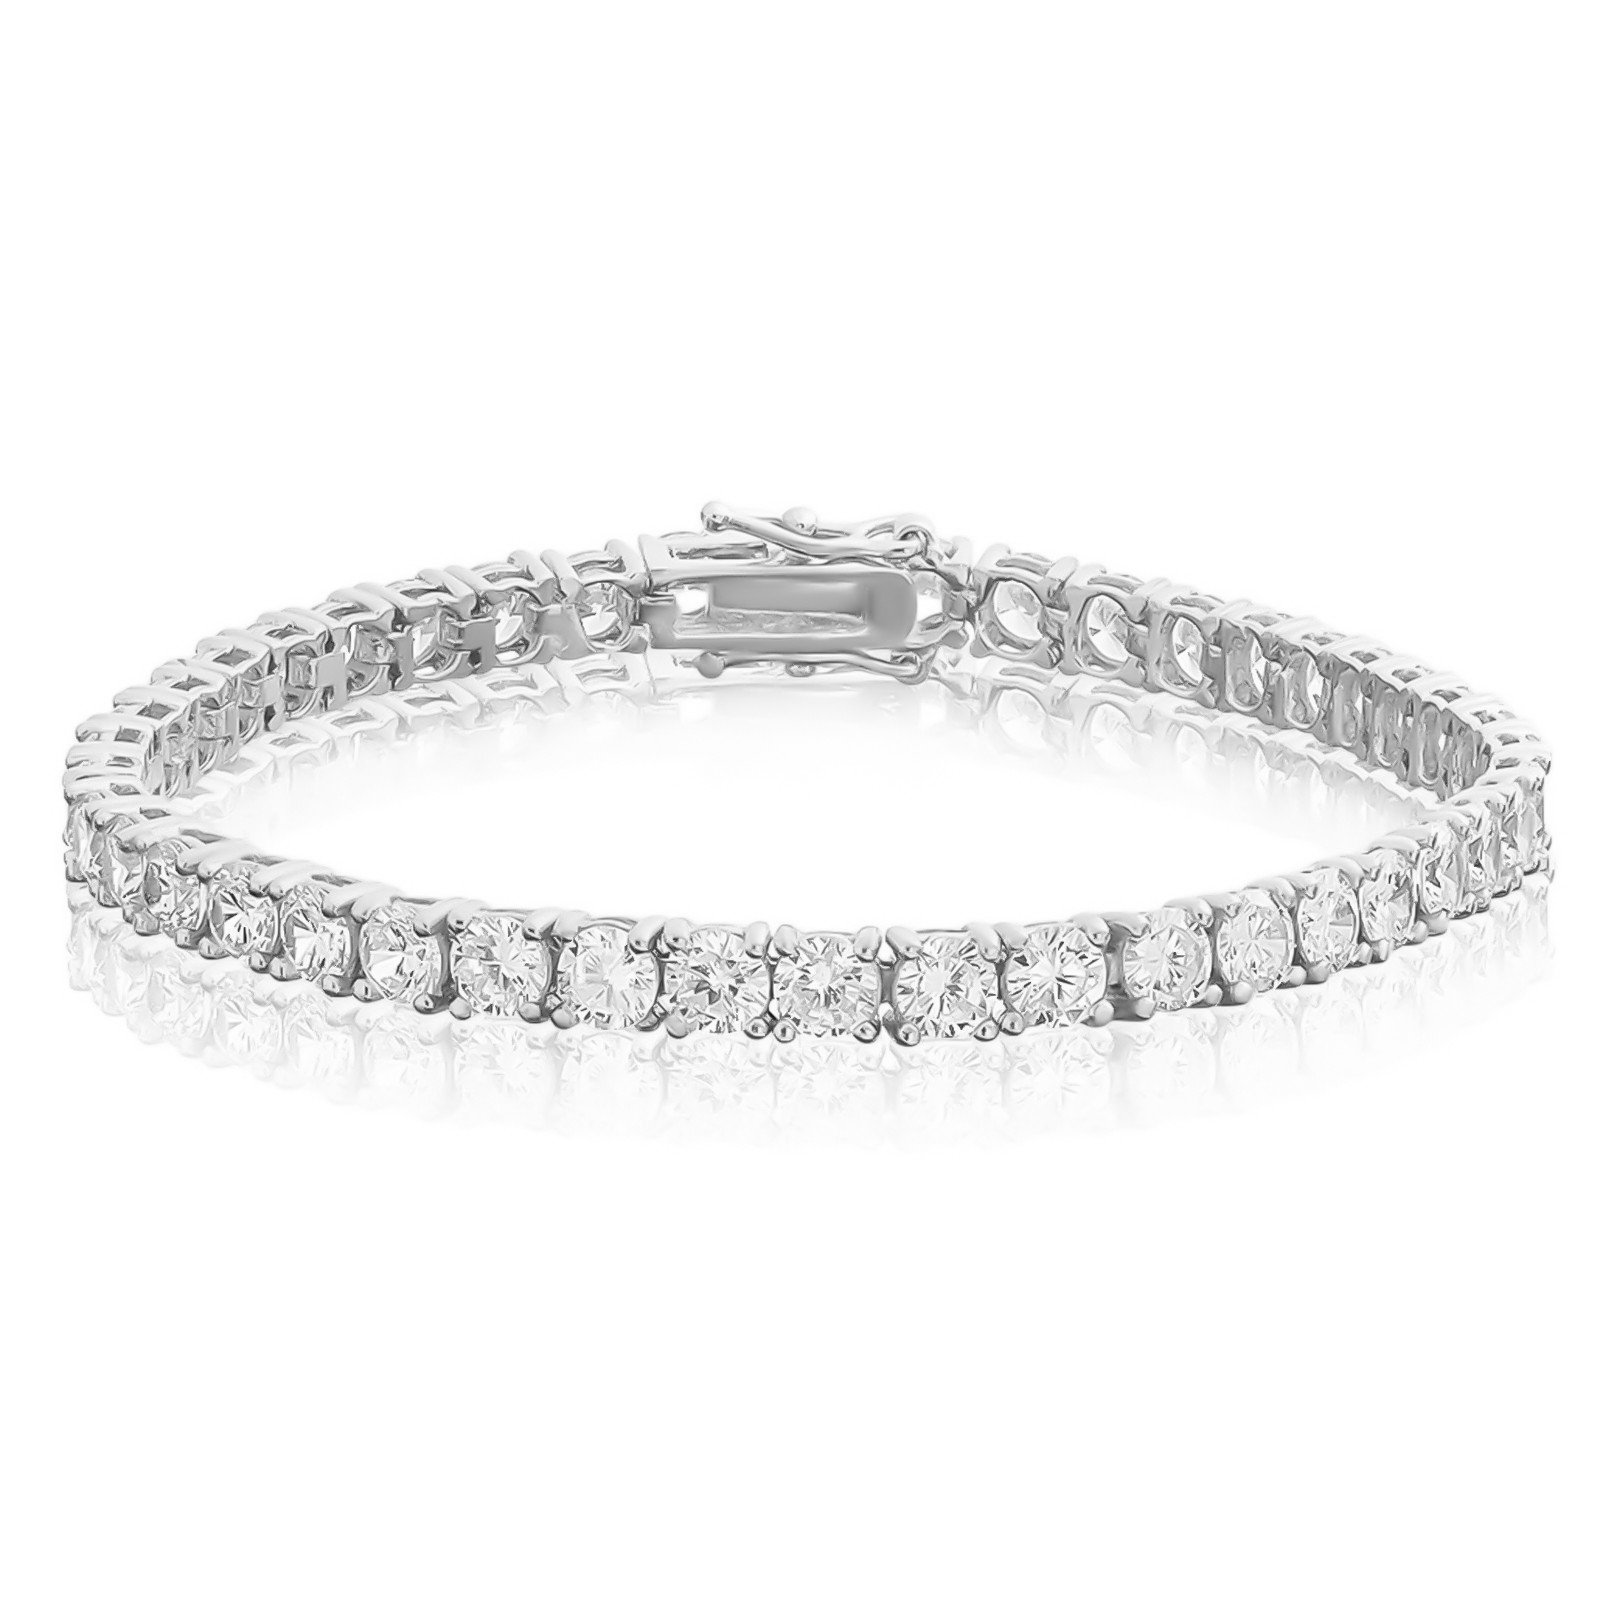 NYC Sterling 4MM Sterling Silver Round Cubic Zirconia Tennis Bracelet, 7.5 Inches (Rhodium-Plated-Silver)